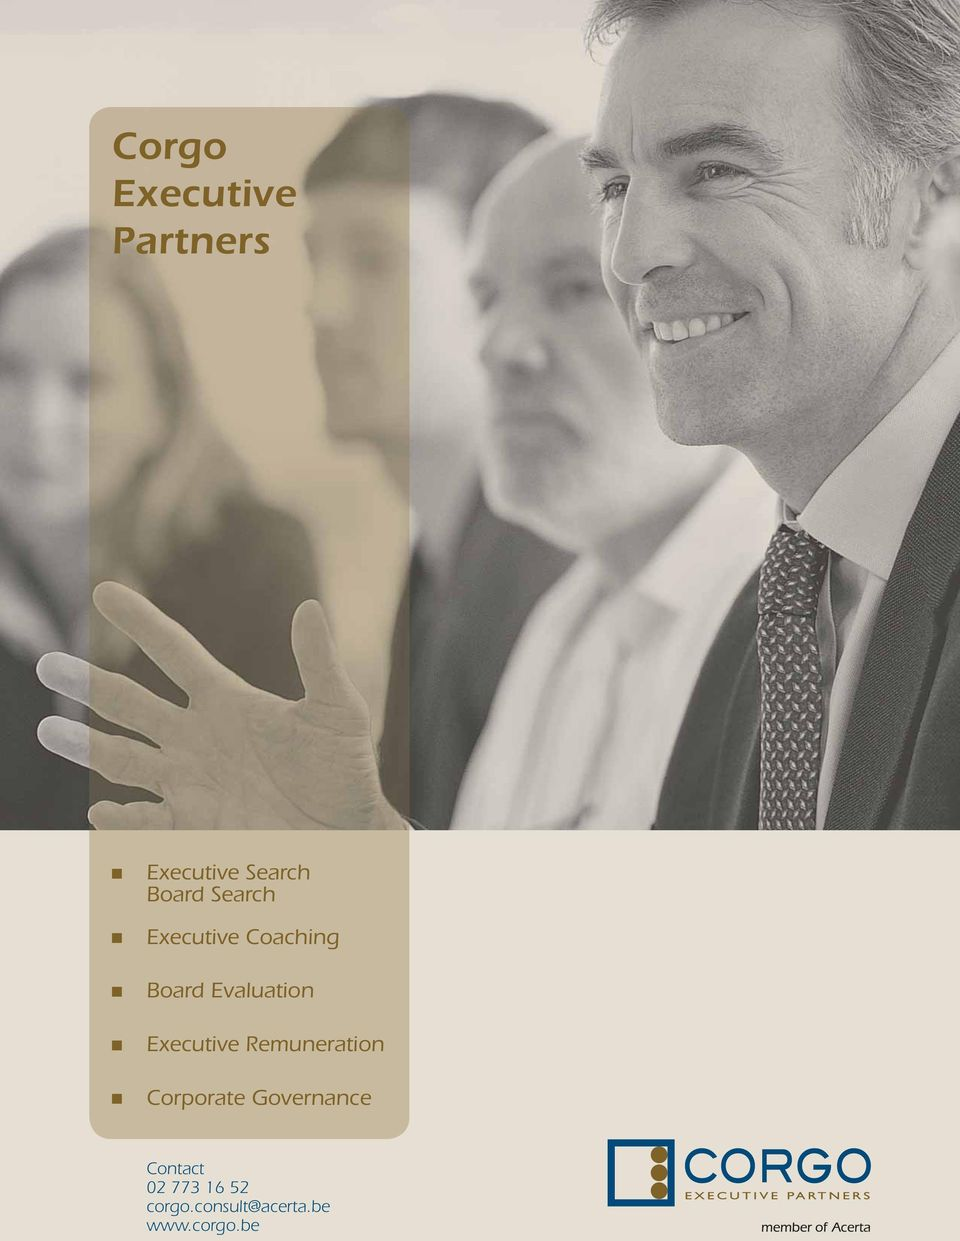 Executive Remuneration Corporate Governance